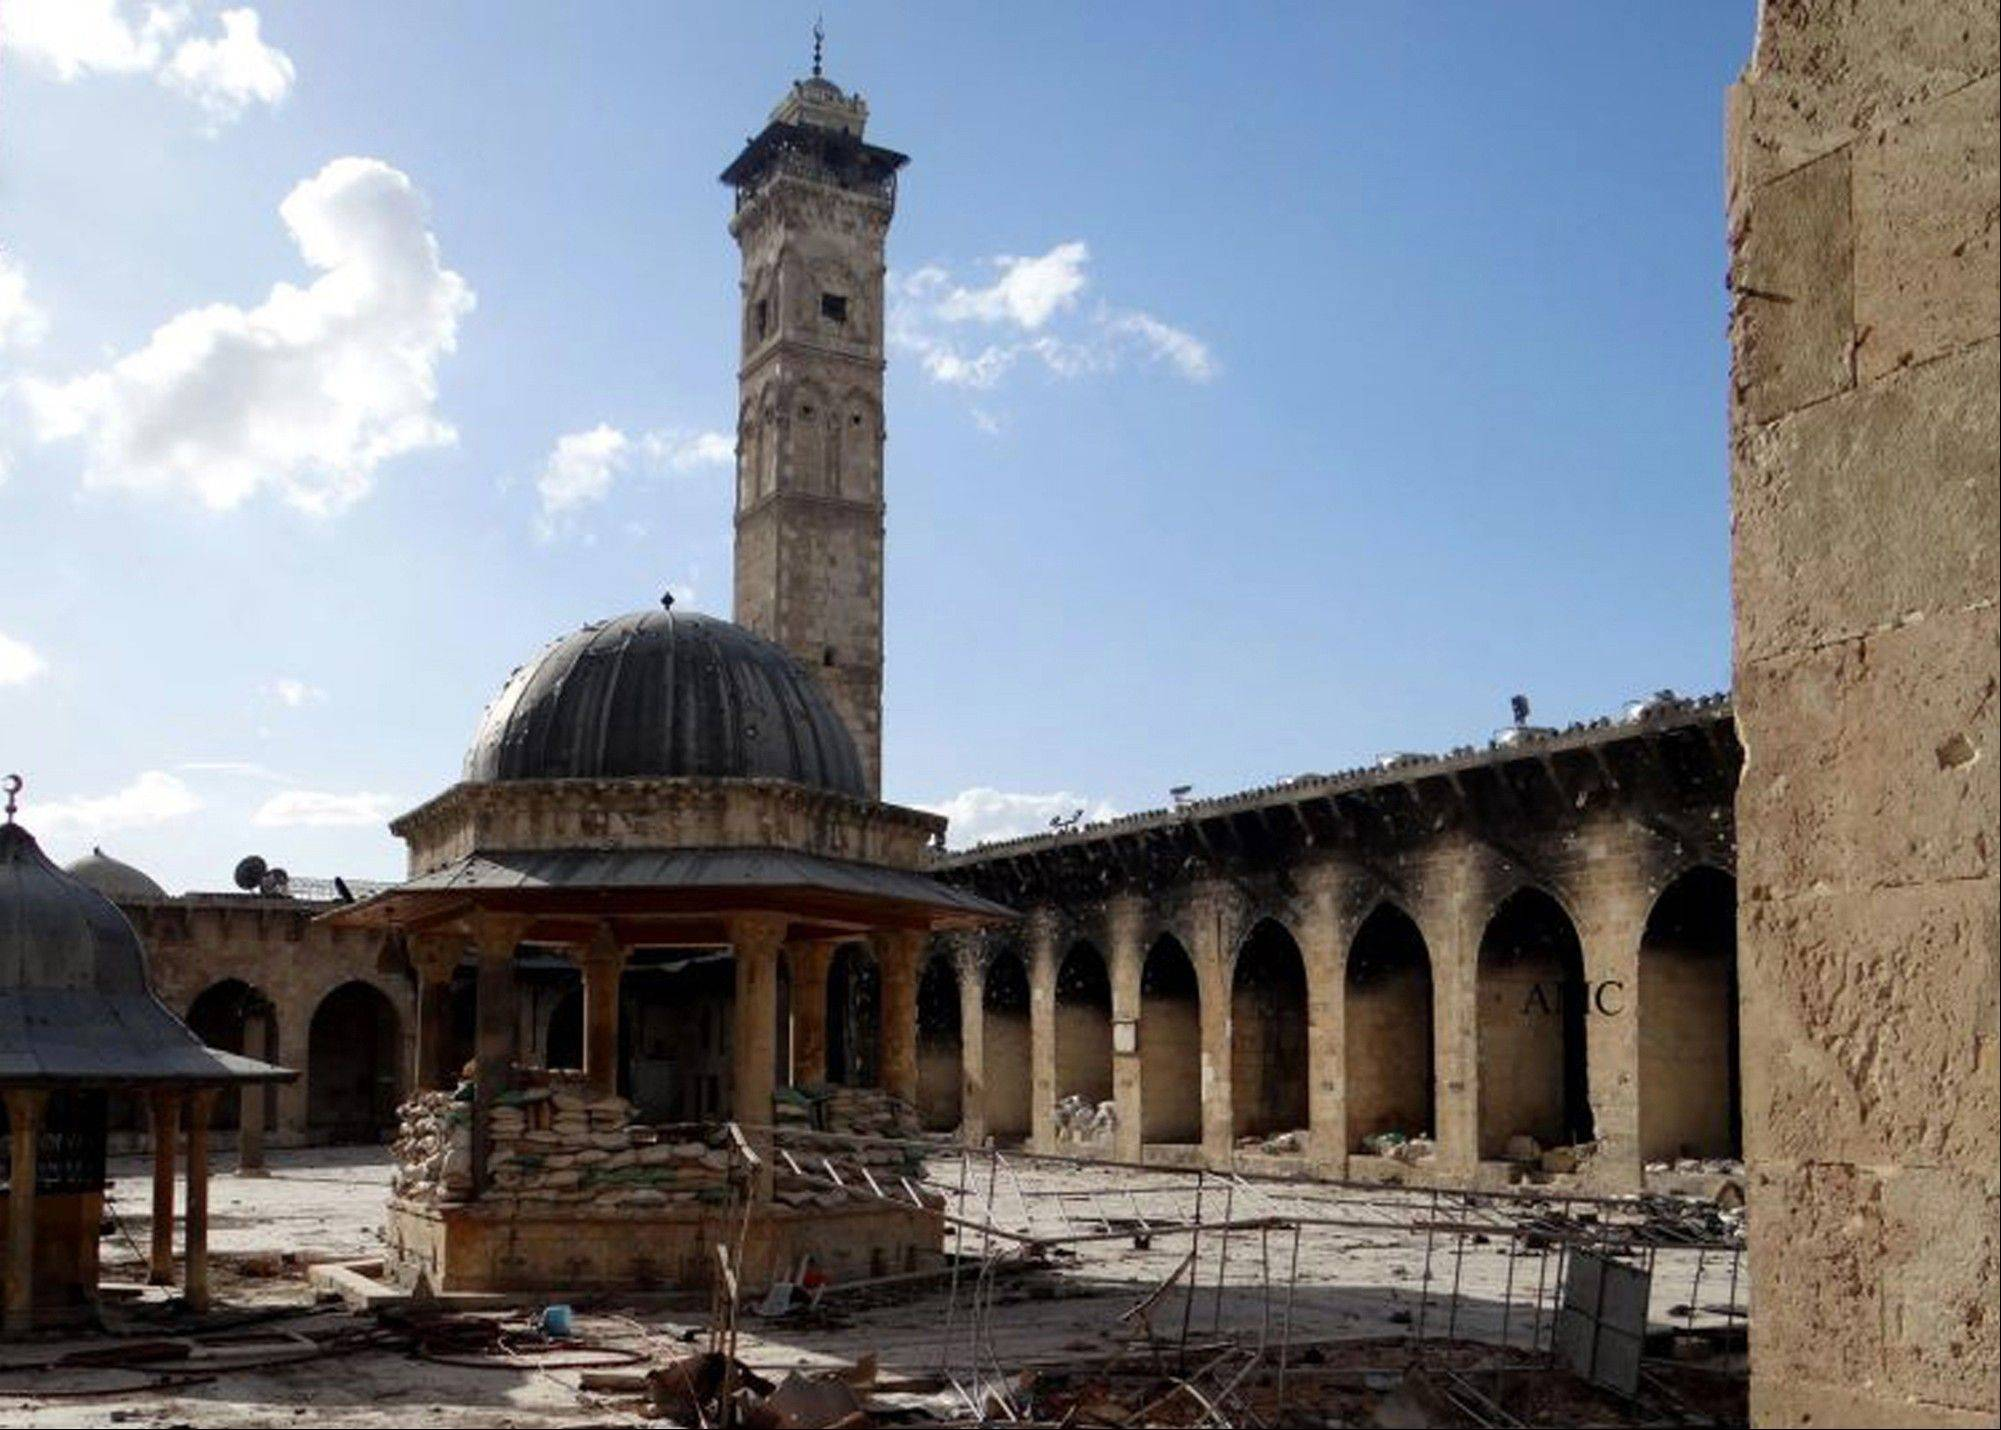 The minaret of a famed 12th century Umayyad mosque before it was destroyed by the shelling, in the northern city of Aleppo, Syria. The minaret of a famed 12th century Sunni mosque in the northern Syrian city of Aleppo was destroyed Wednesday, April 24, 2013.